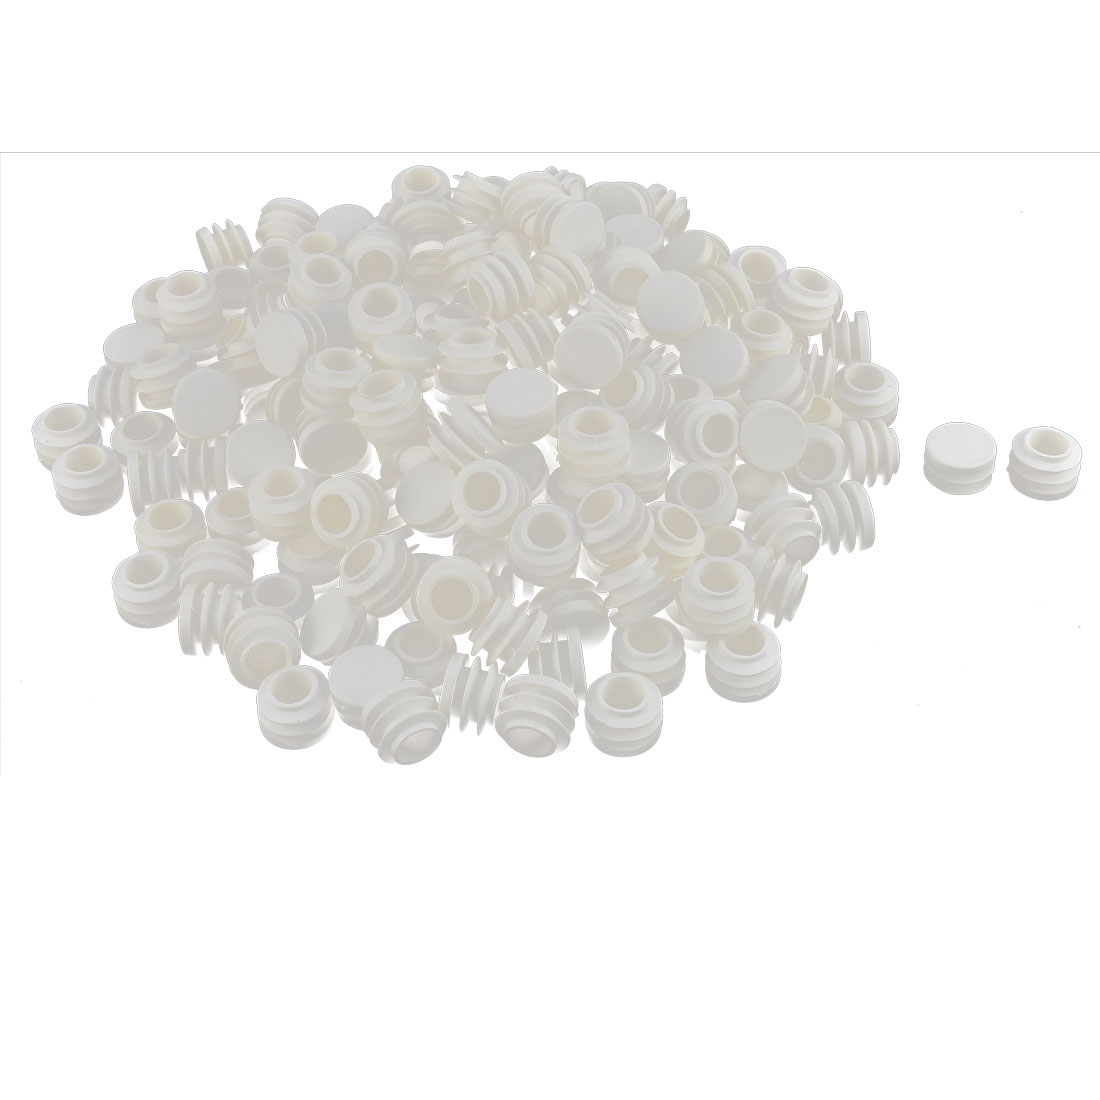 Table Chair Plastic Round Tube Pipe Insert Cap Cover Protector White 19mm Dia 200pcs